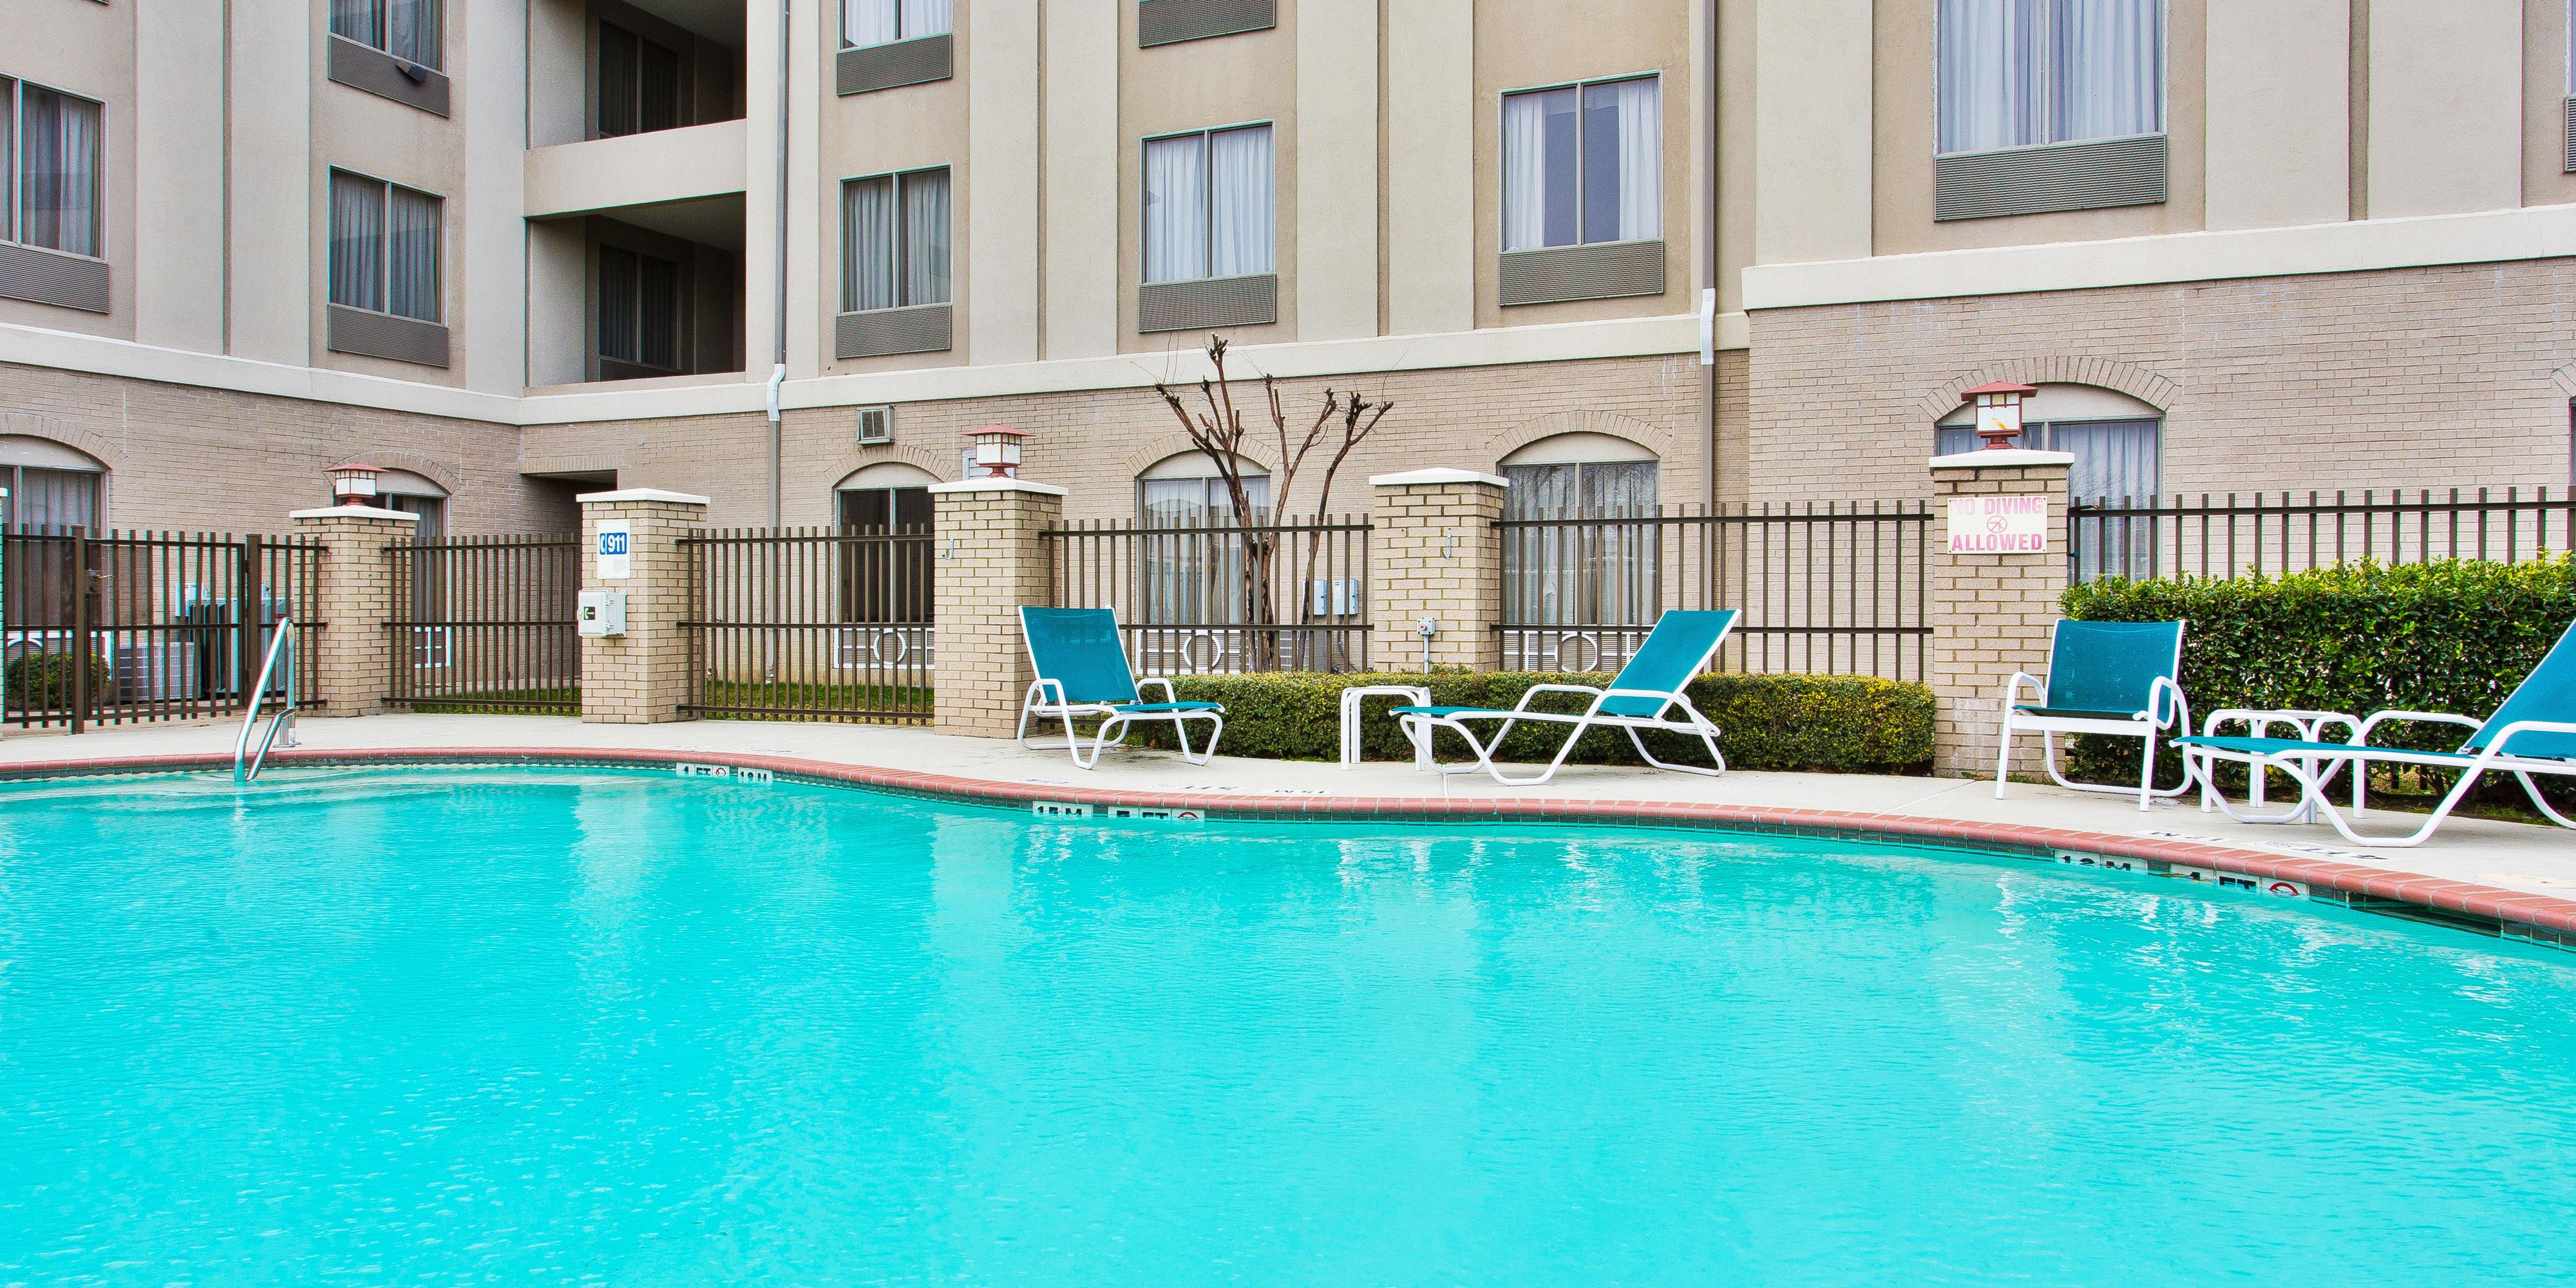 holiday inn express and suites duncanville 3865865979 2x1 - Hilton Garden Inn Duncanville